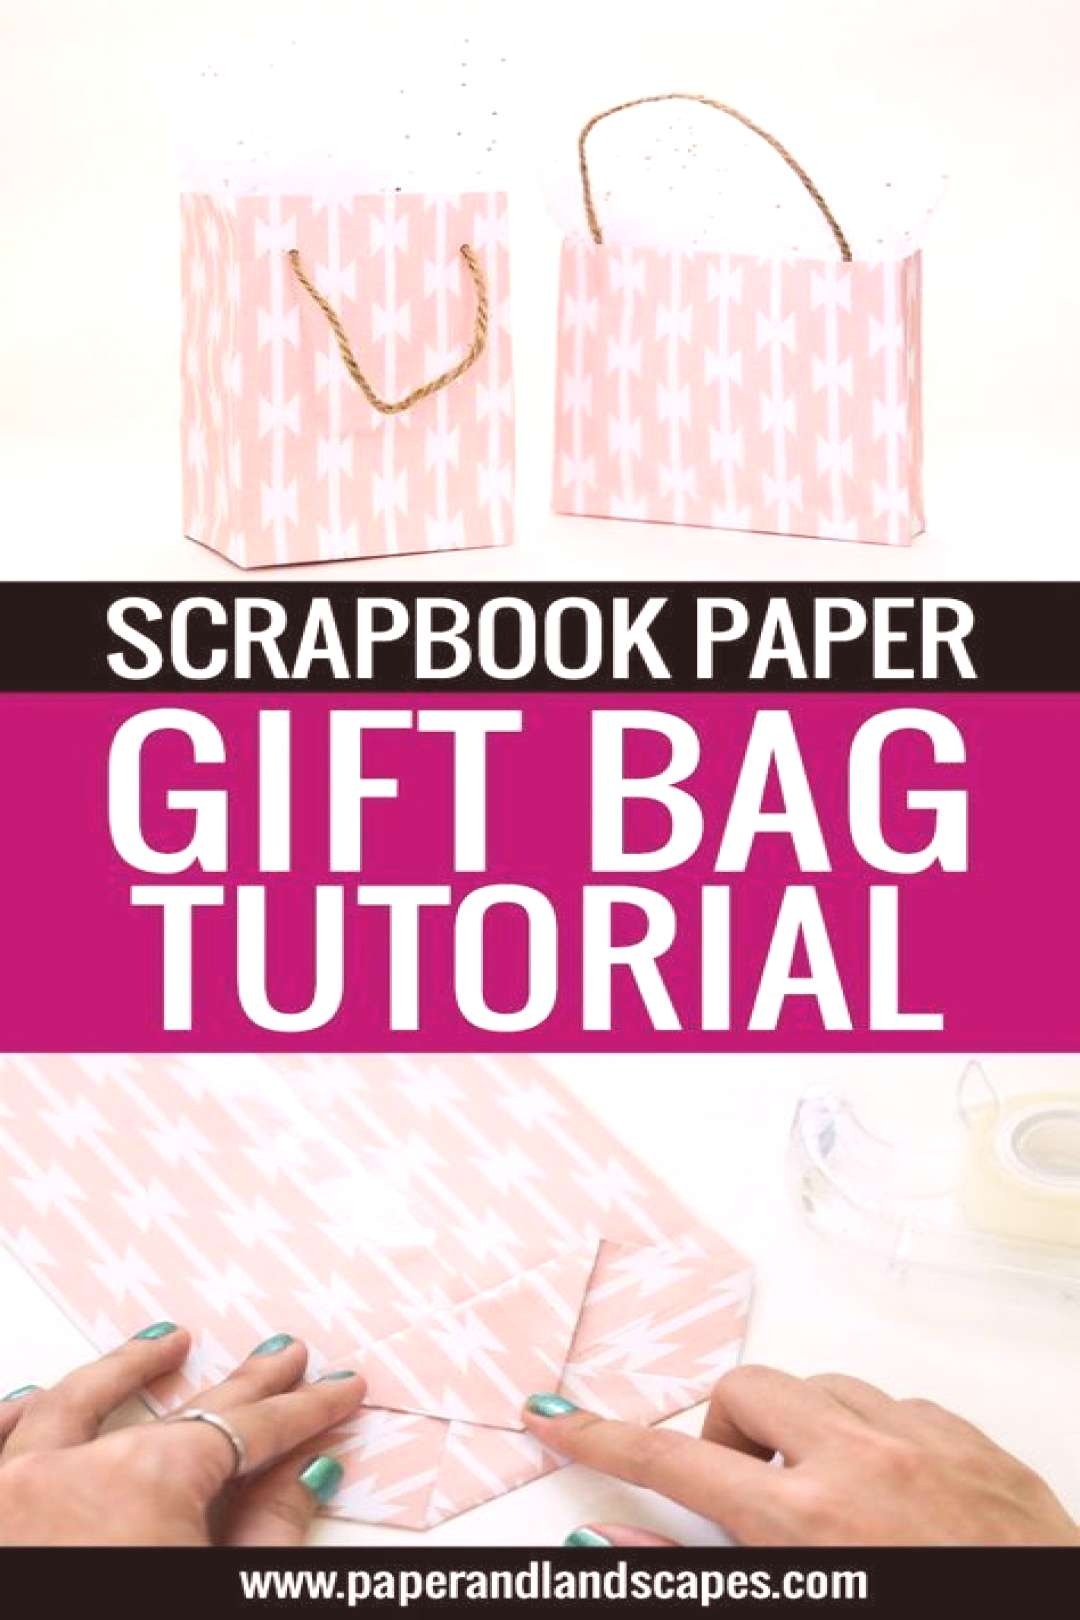 Scrapbook Paper Gift Bag Tutorial - Paper and Landscapes - Make all your gifts look unique and pret